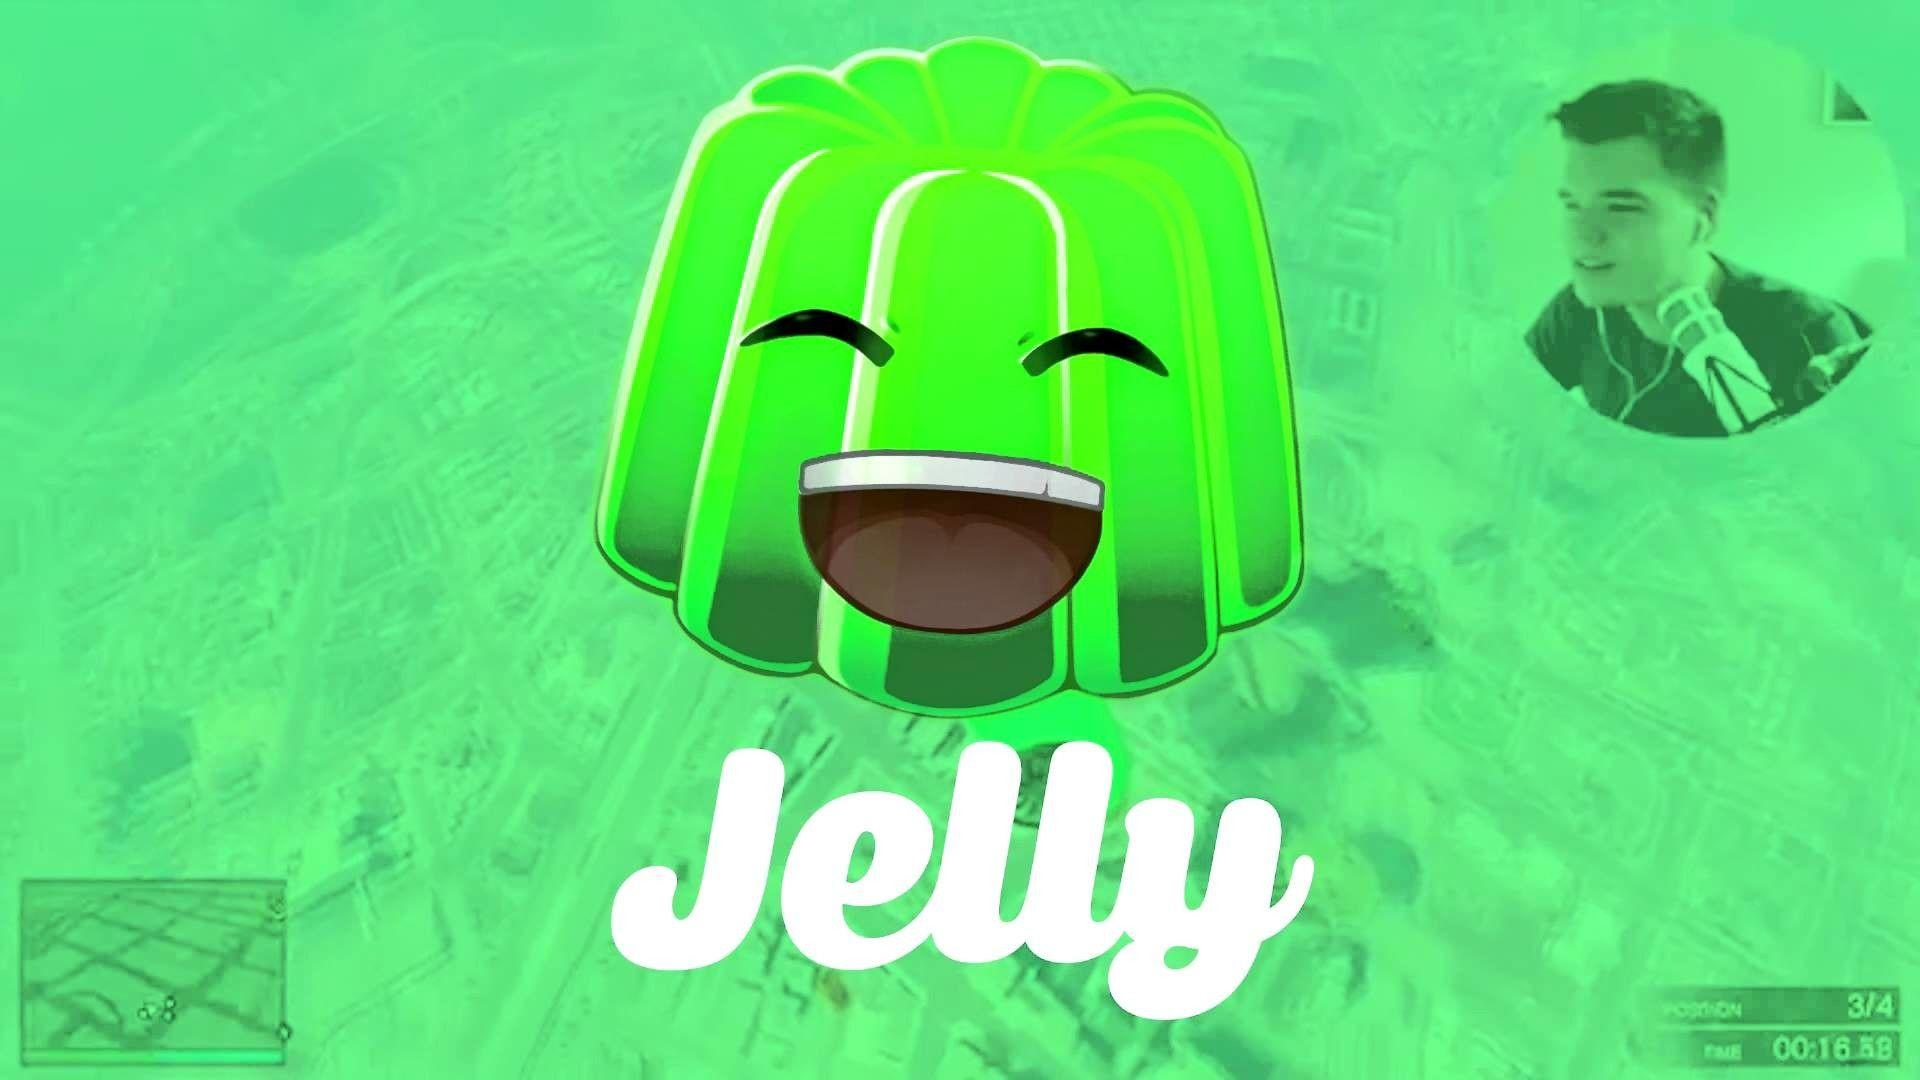 Jelly Youtube Wallpapers Top Free Jelly Youtube Backgrounds Wallpaperaccess